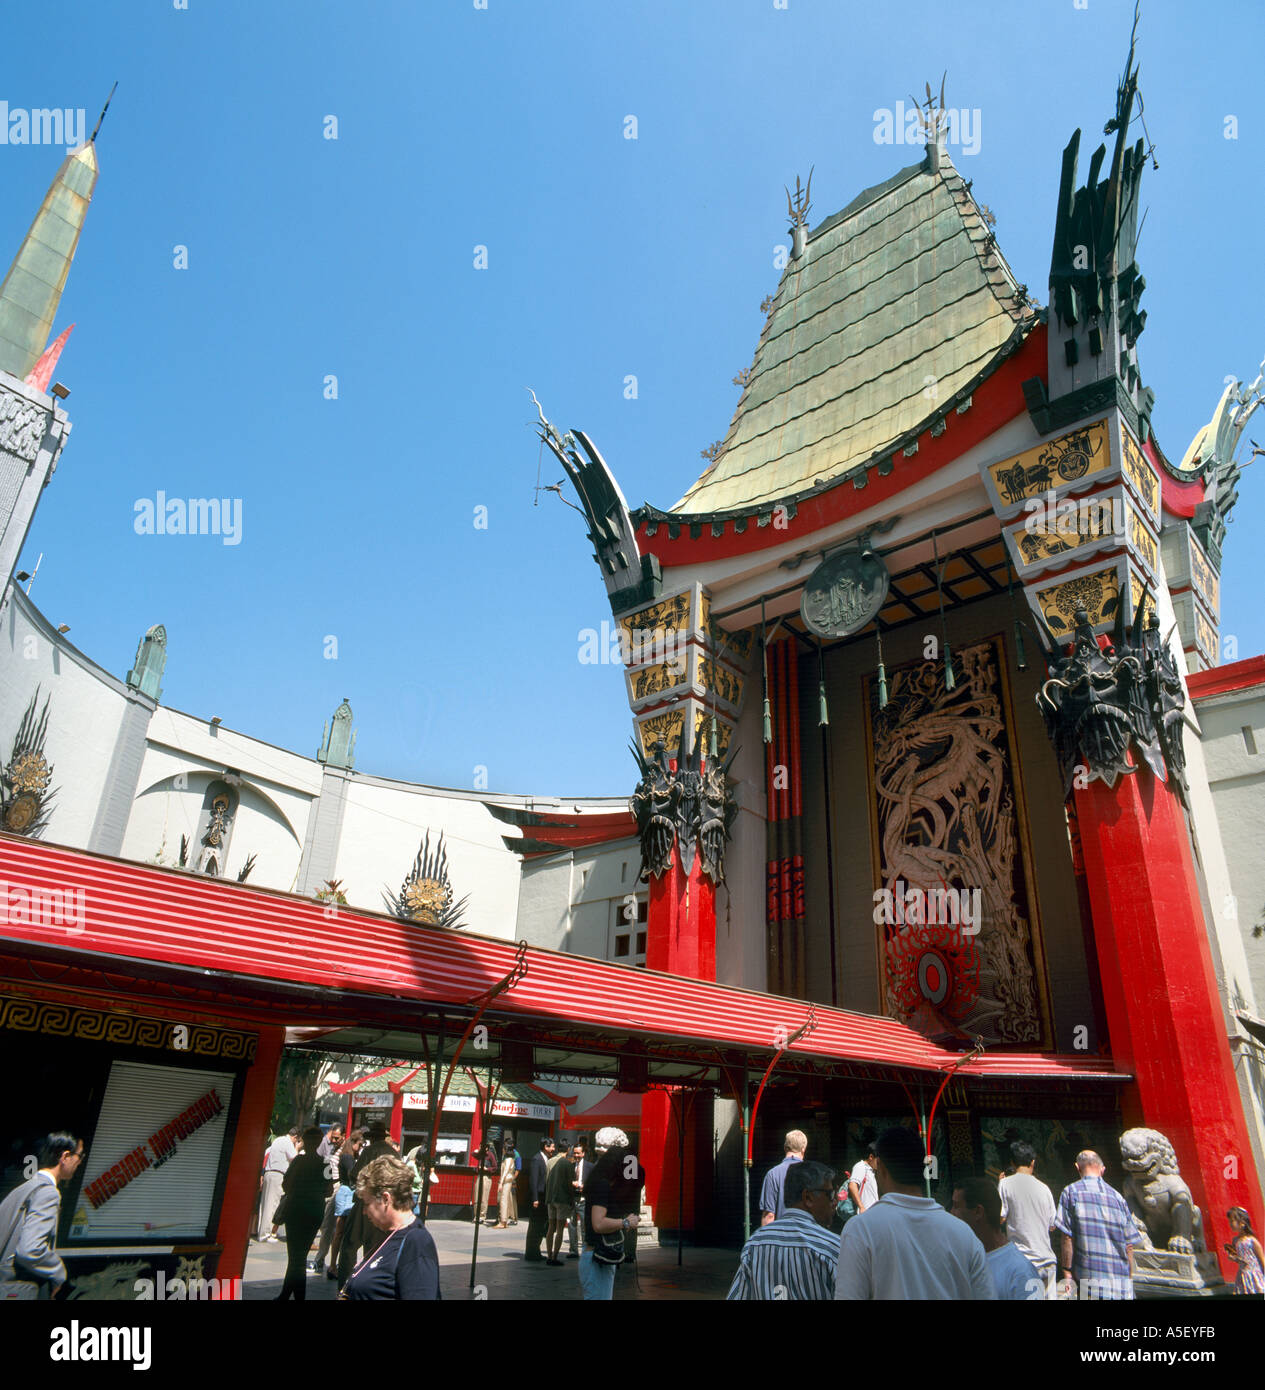 Grauman's Chinese Theatre (now the TCL Chinese Theatre), Hollywood, Los Angeles, California, USA - Stock Image